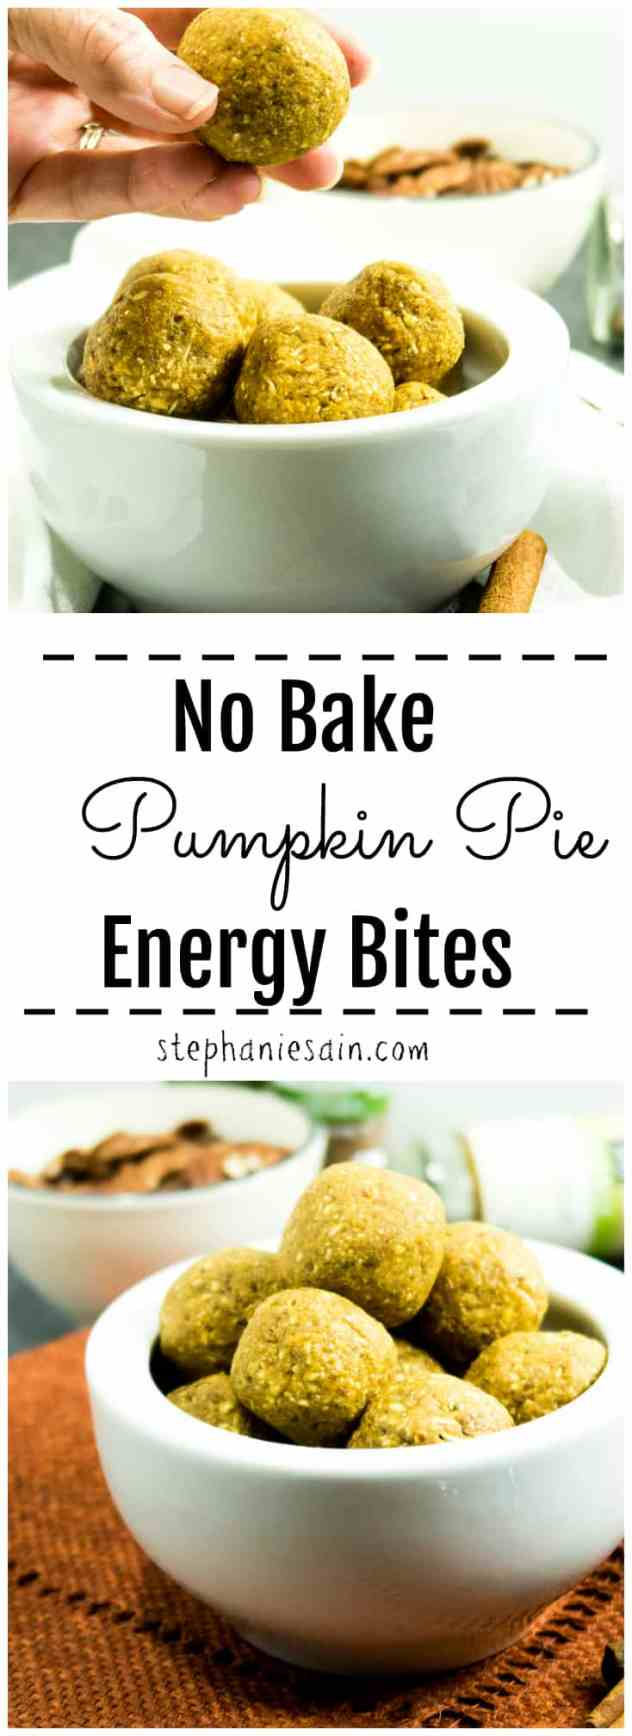 No Bake Pumpkin Pie Energy Bites are a quick, tasty, easy to prepare snack or even perfect for breakfast. Made without added refined sugars and tastes like a little guilt free bite of pumpkin pie. Vegan & Gluten free.